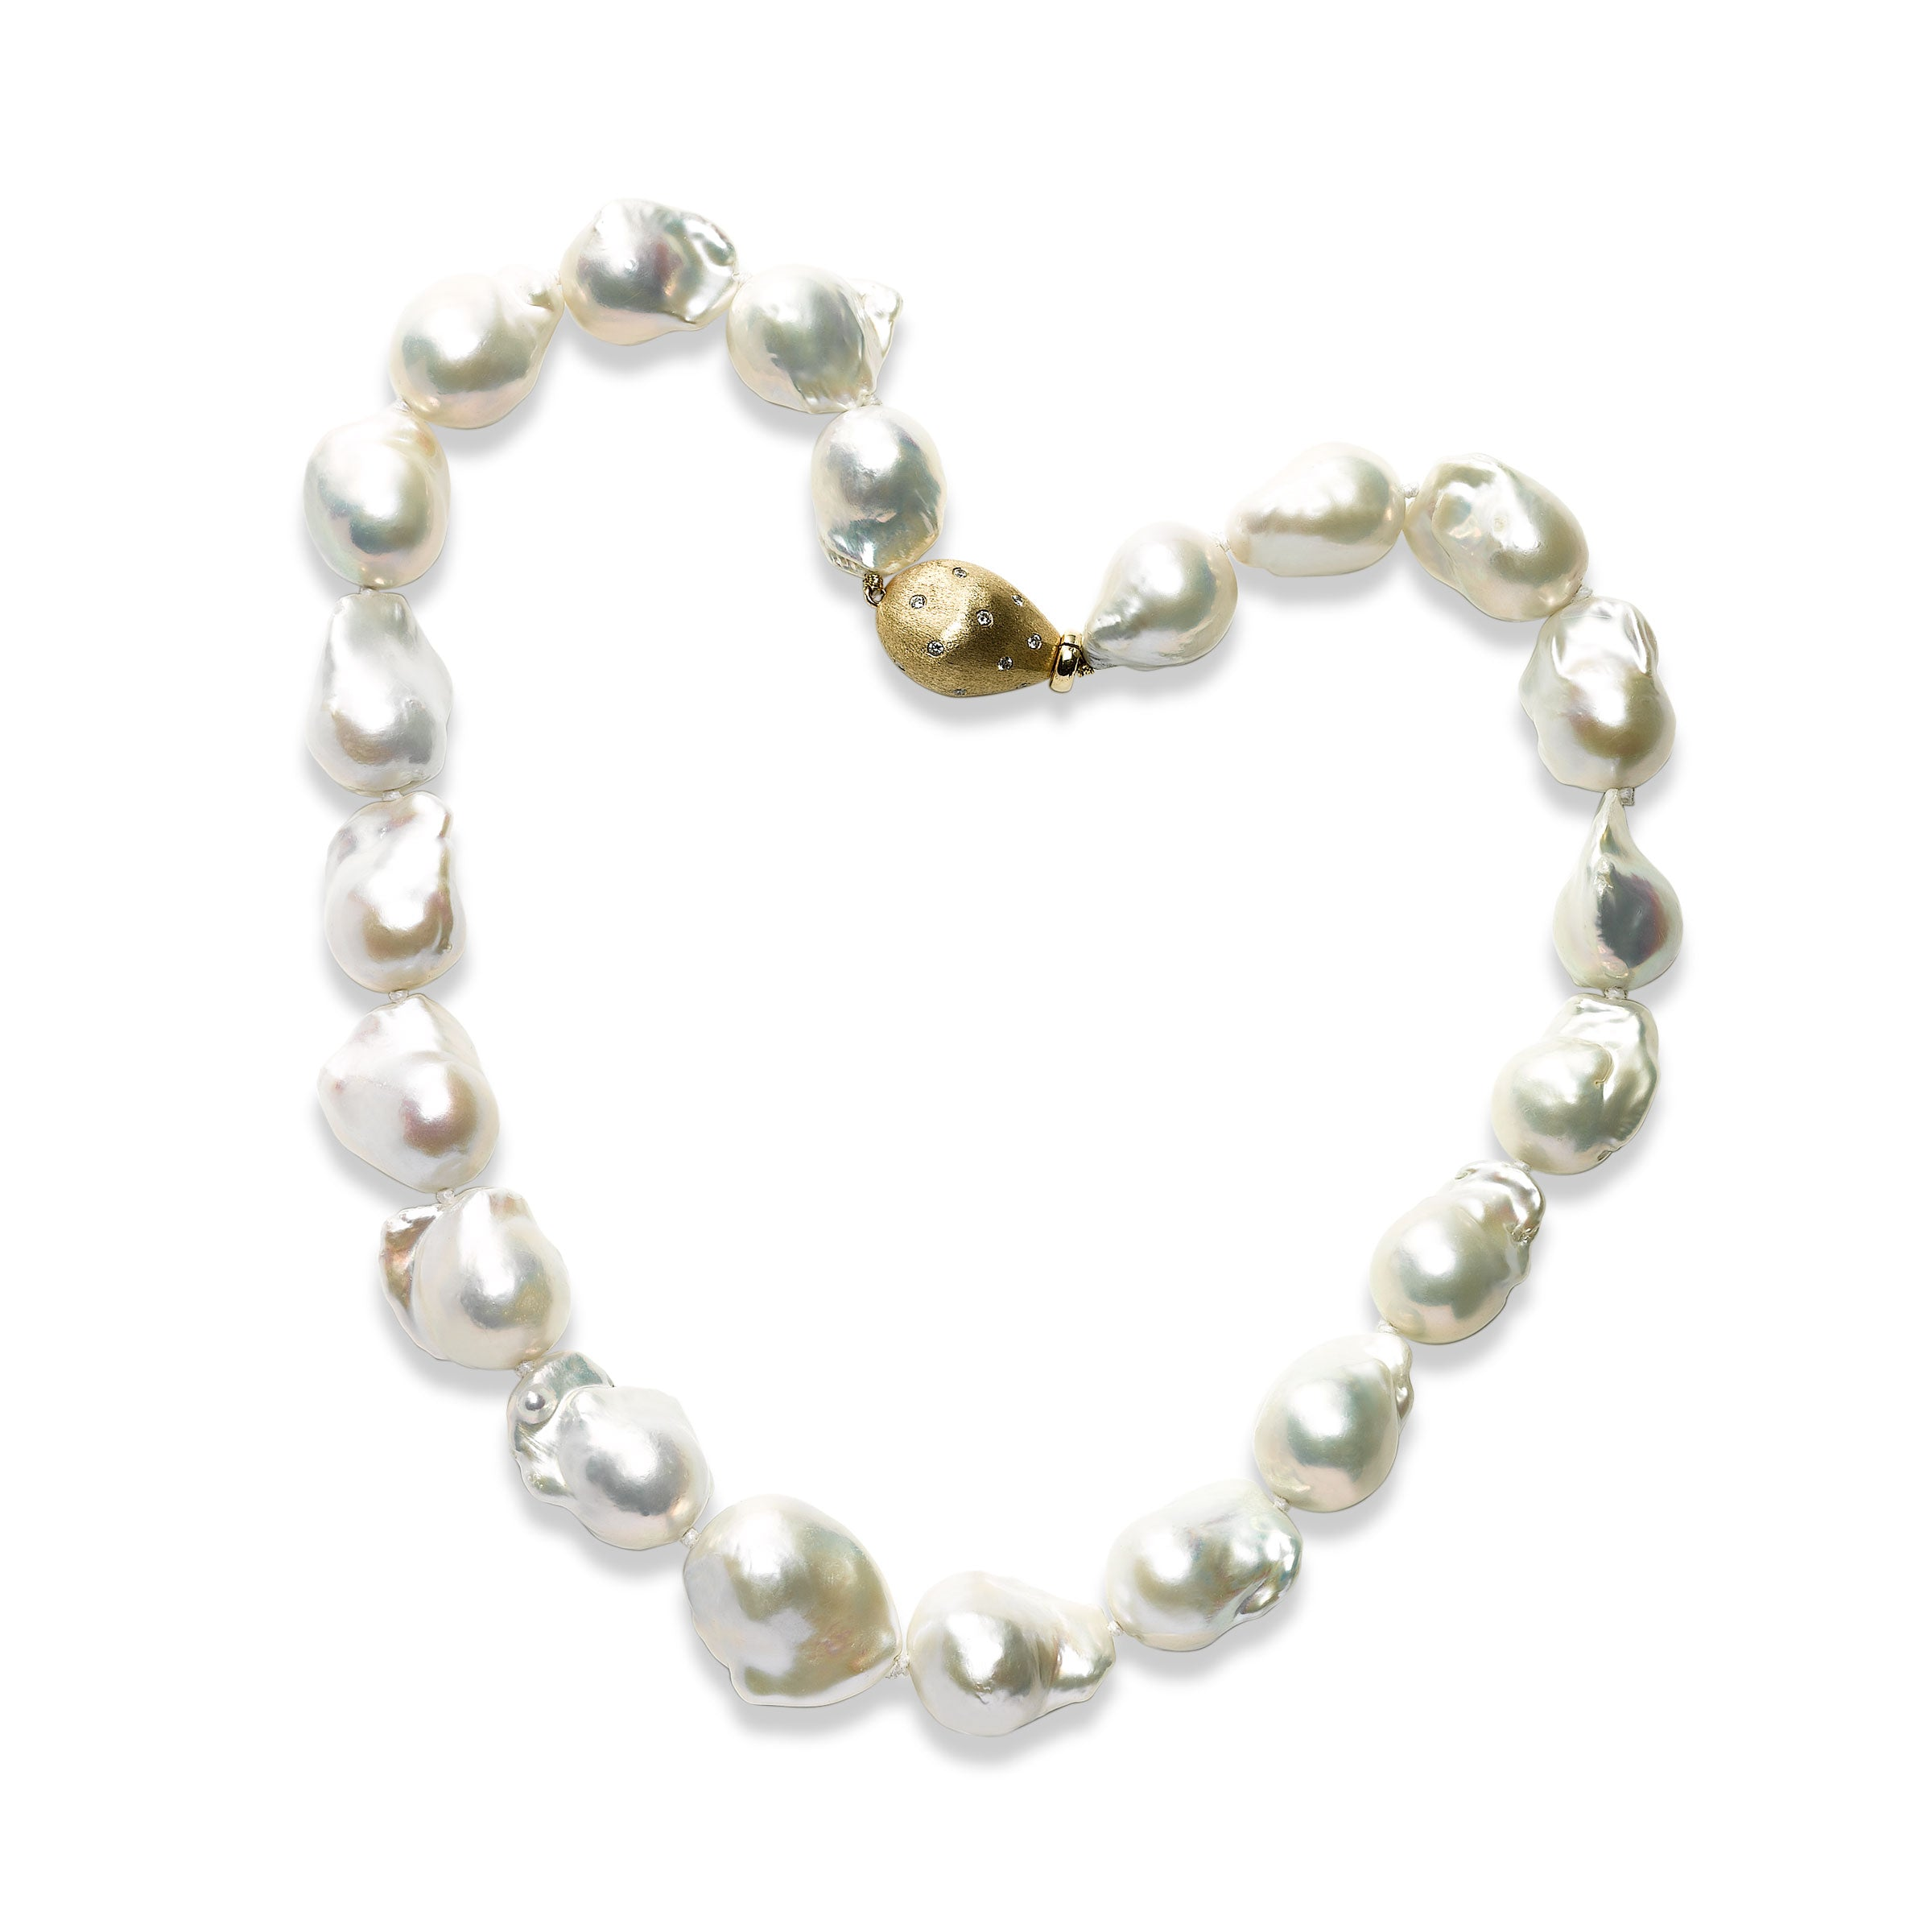 7bb6c99015ecf Baroque South Sea Cultured Pearl Necklace, 14K Yellow Gold